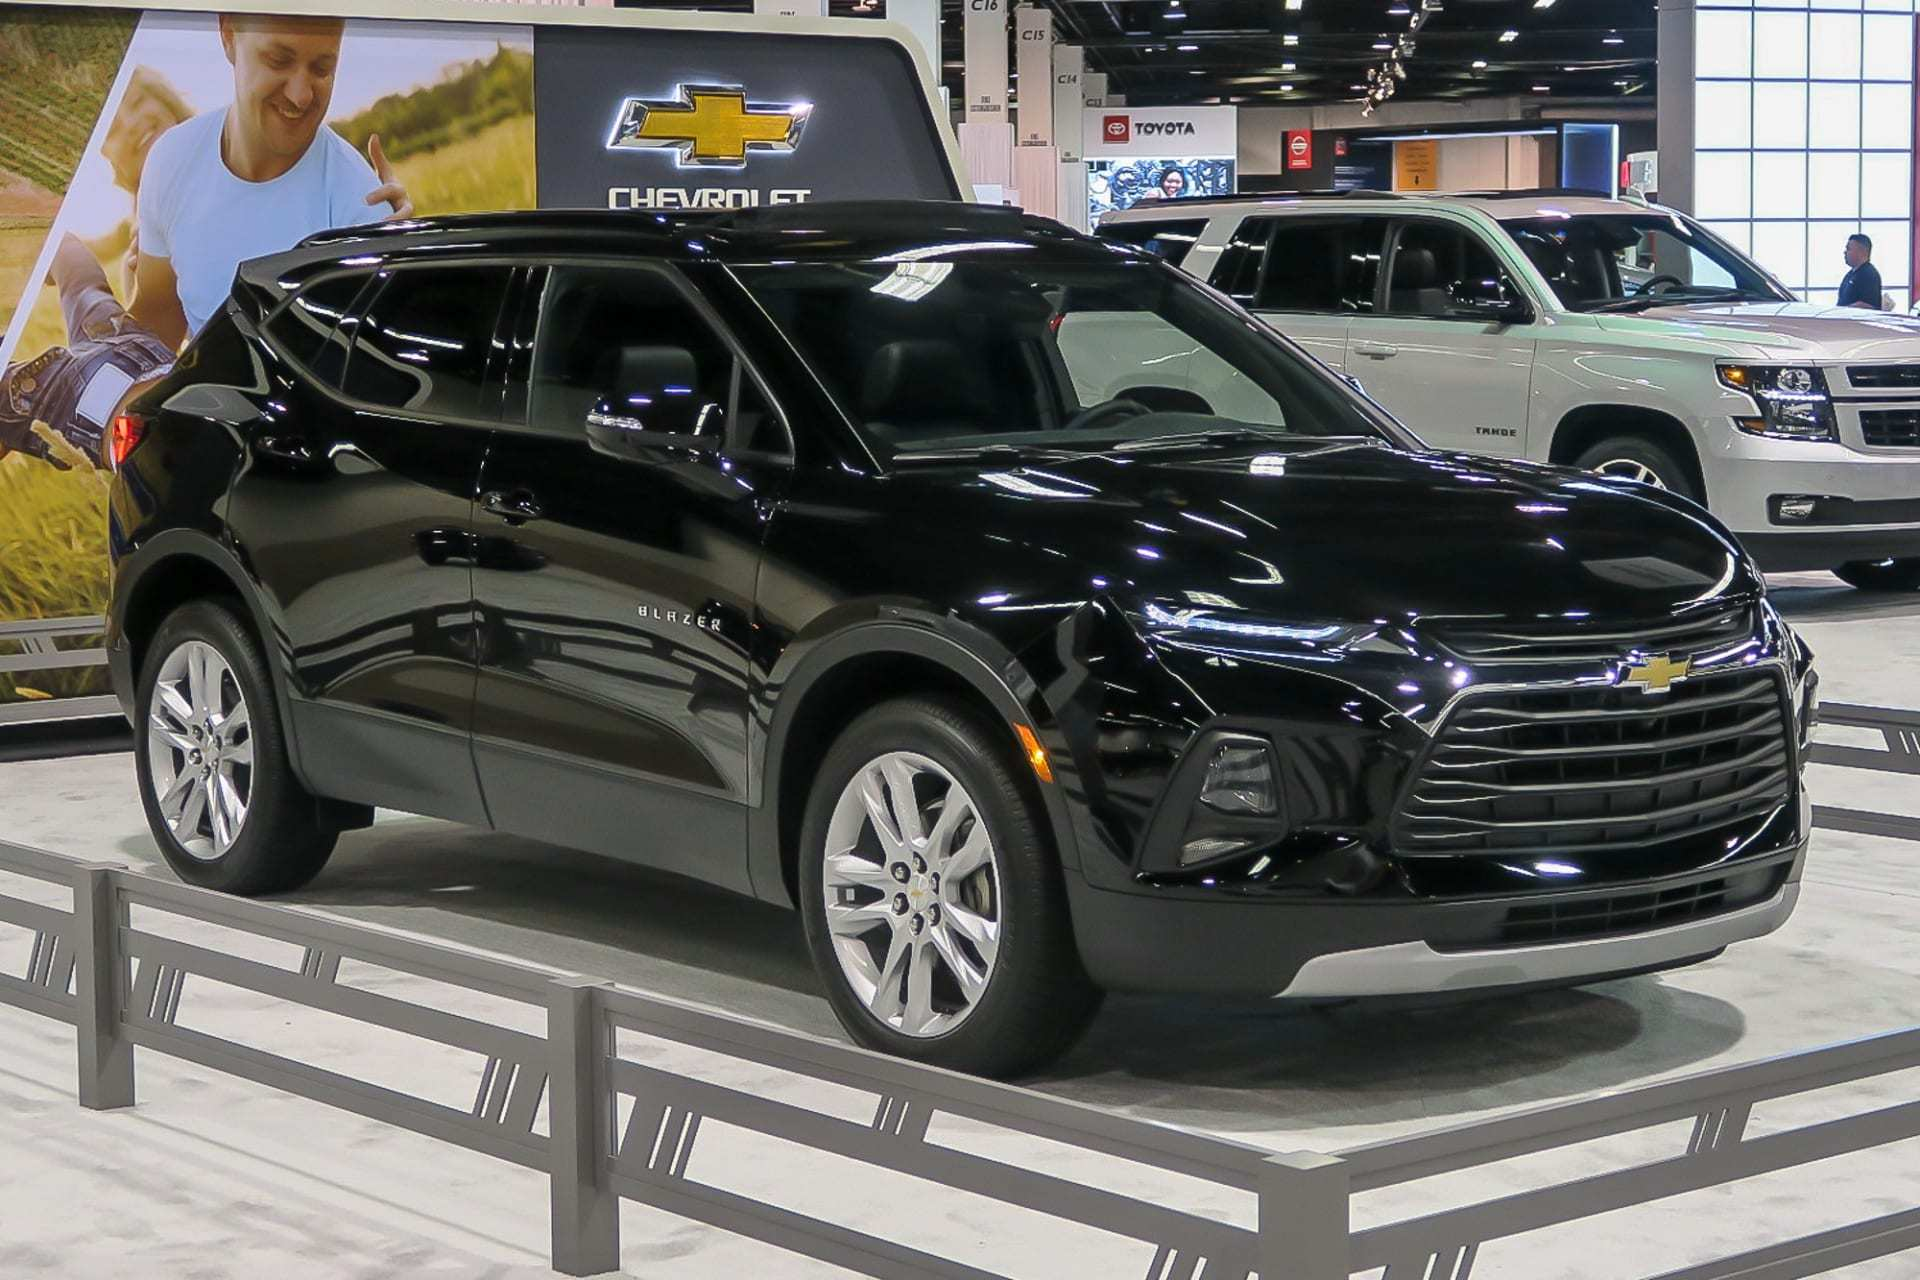 14 Best Review 2019 Chevy Trailblazer Ss Images by 2019 Chevy Trailblazer Ss